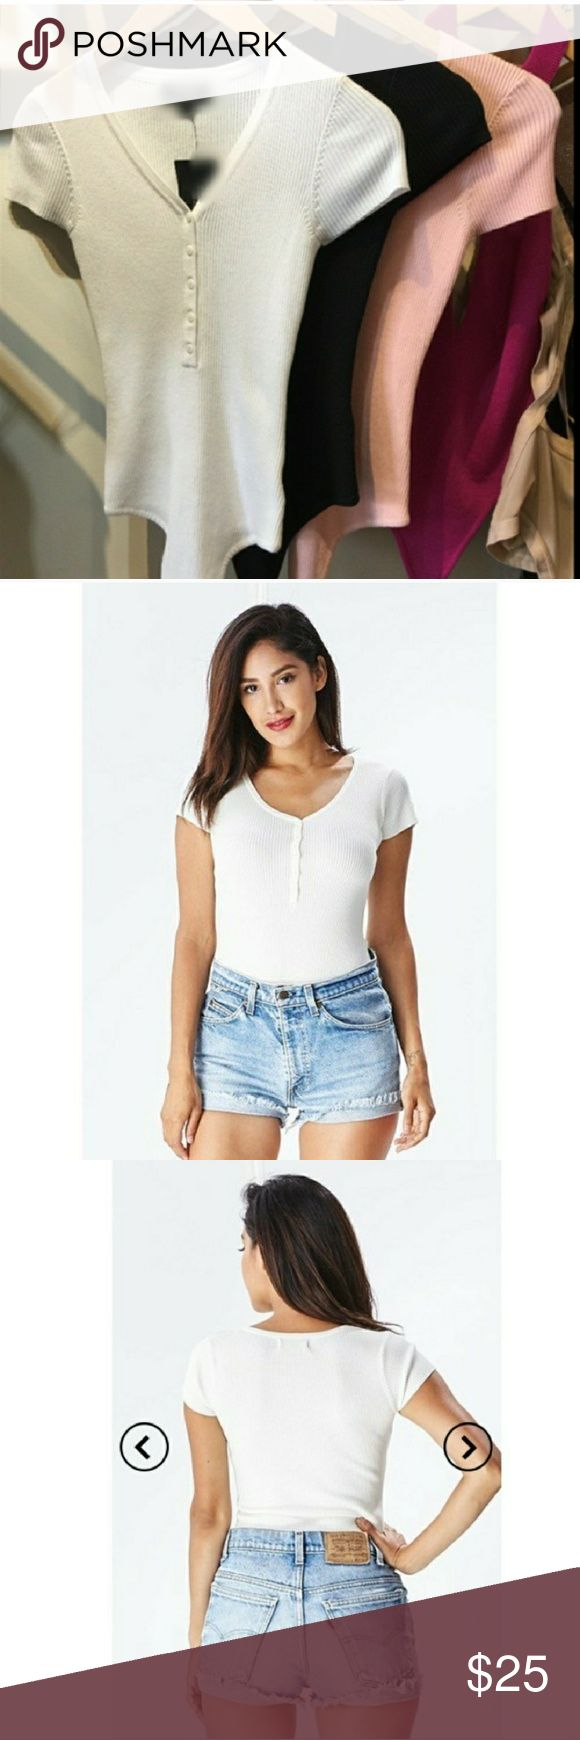 S NWT sexy white tee bodysuit boutique brand 👕🛍 See description in pic.5 above. Brand new with tag.  Best fits XS/S. Reduced shipping available upon request. 5 star rated seller. Photo credit @desiredcloset. boutique Tops Tees - Short Sleeve